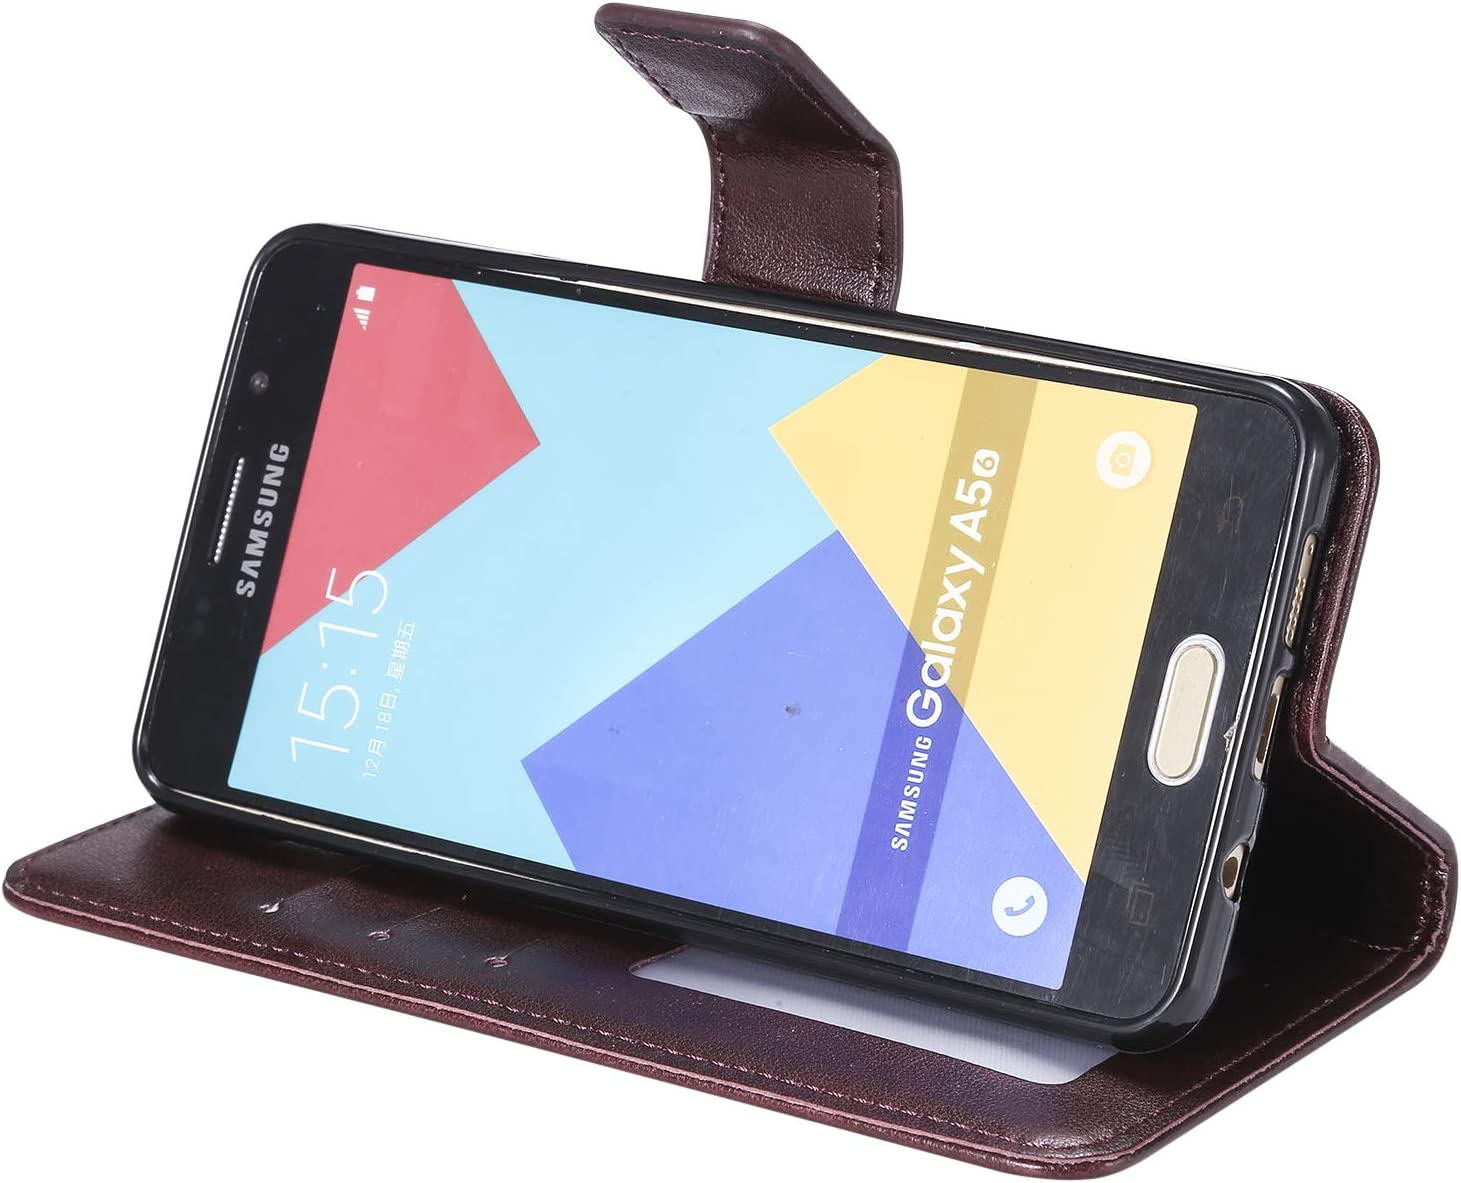 Shockproof Leather Flip Cover Case for Samsung Galaxy A3 2016 NEXCURIO Wallet Case for Galaxy A3 NEHHA130087 Brown with Card Holder Side Pocket Kickstand 2016